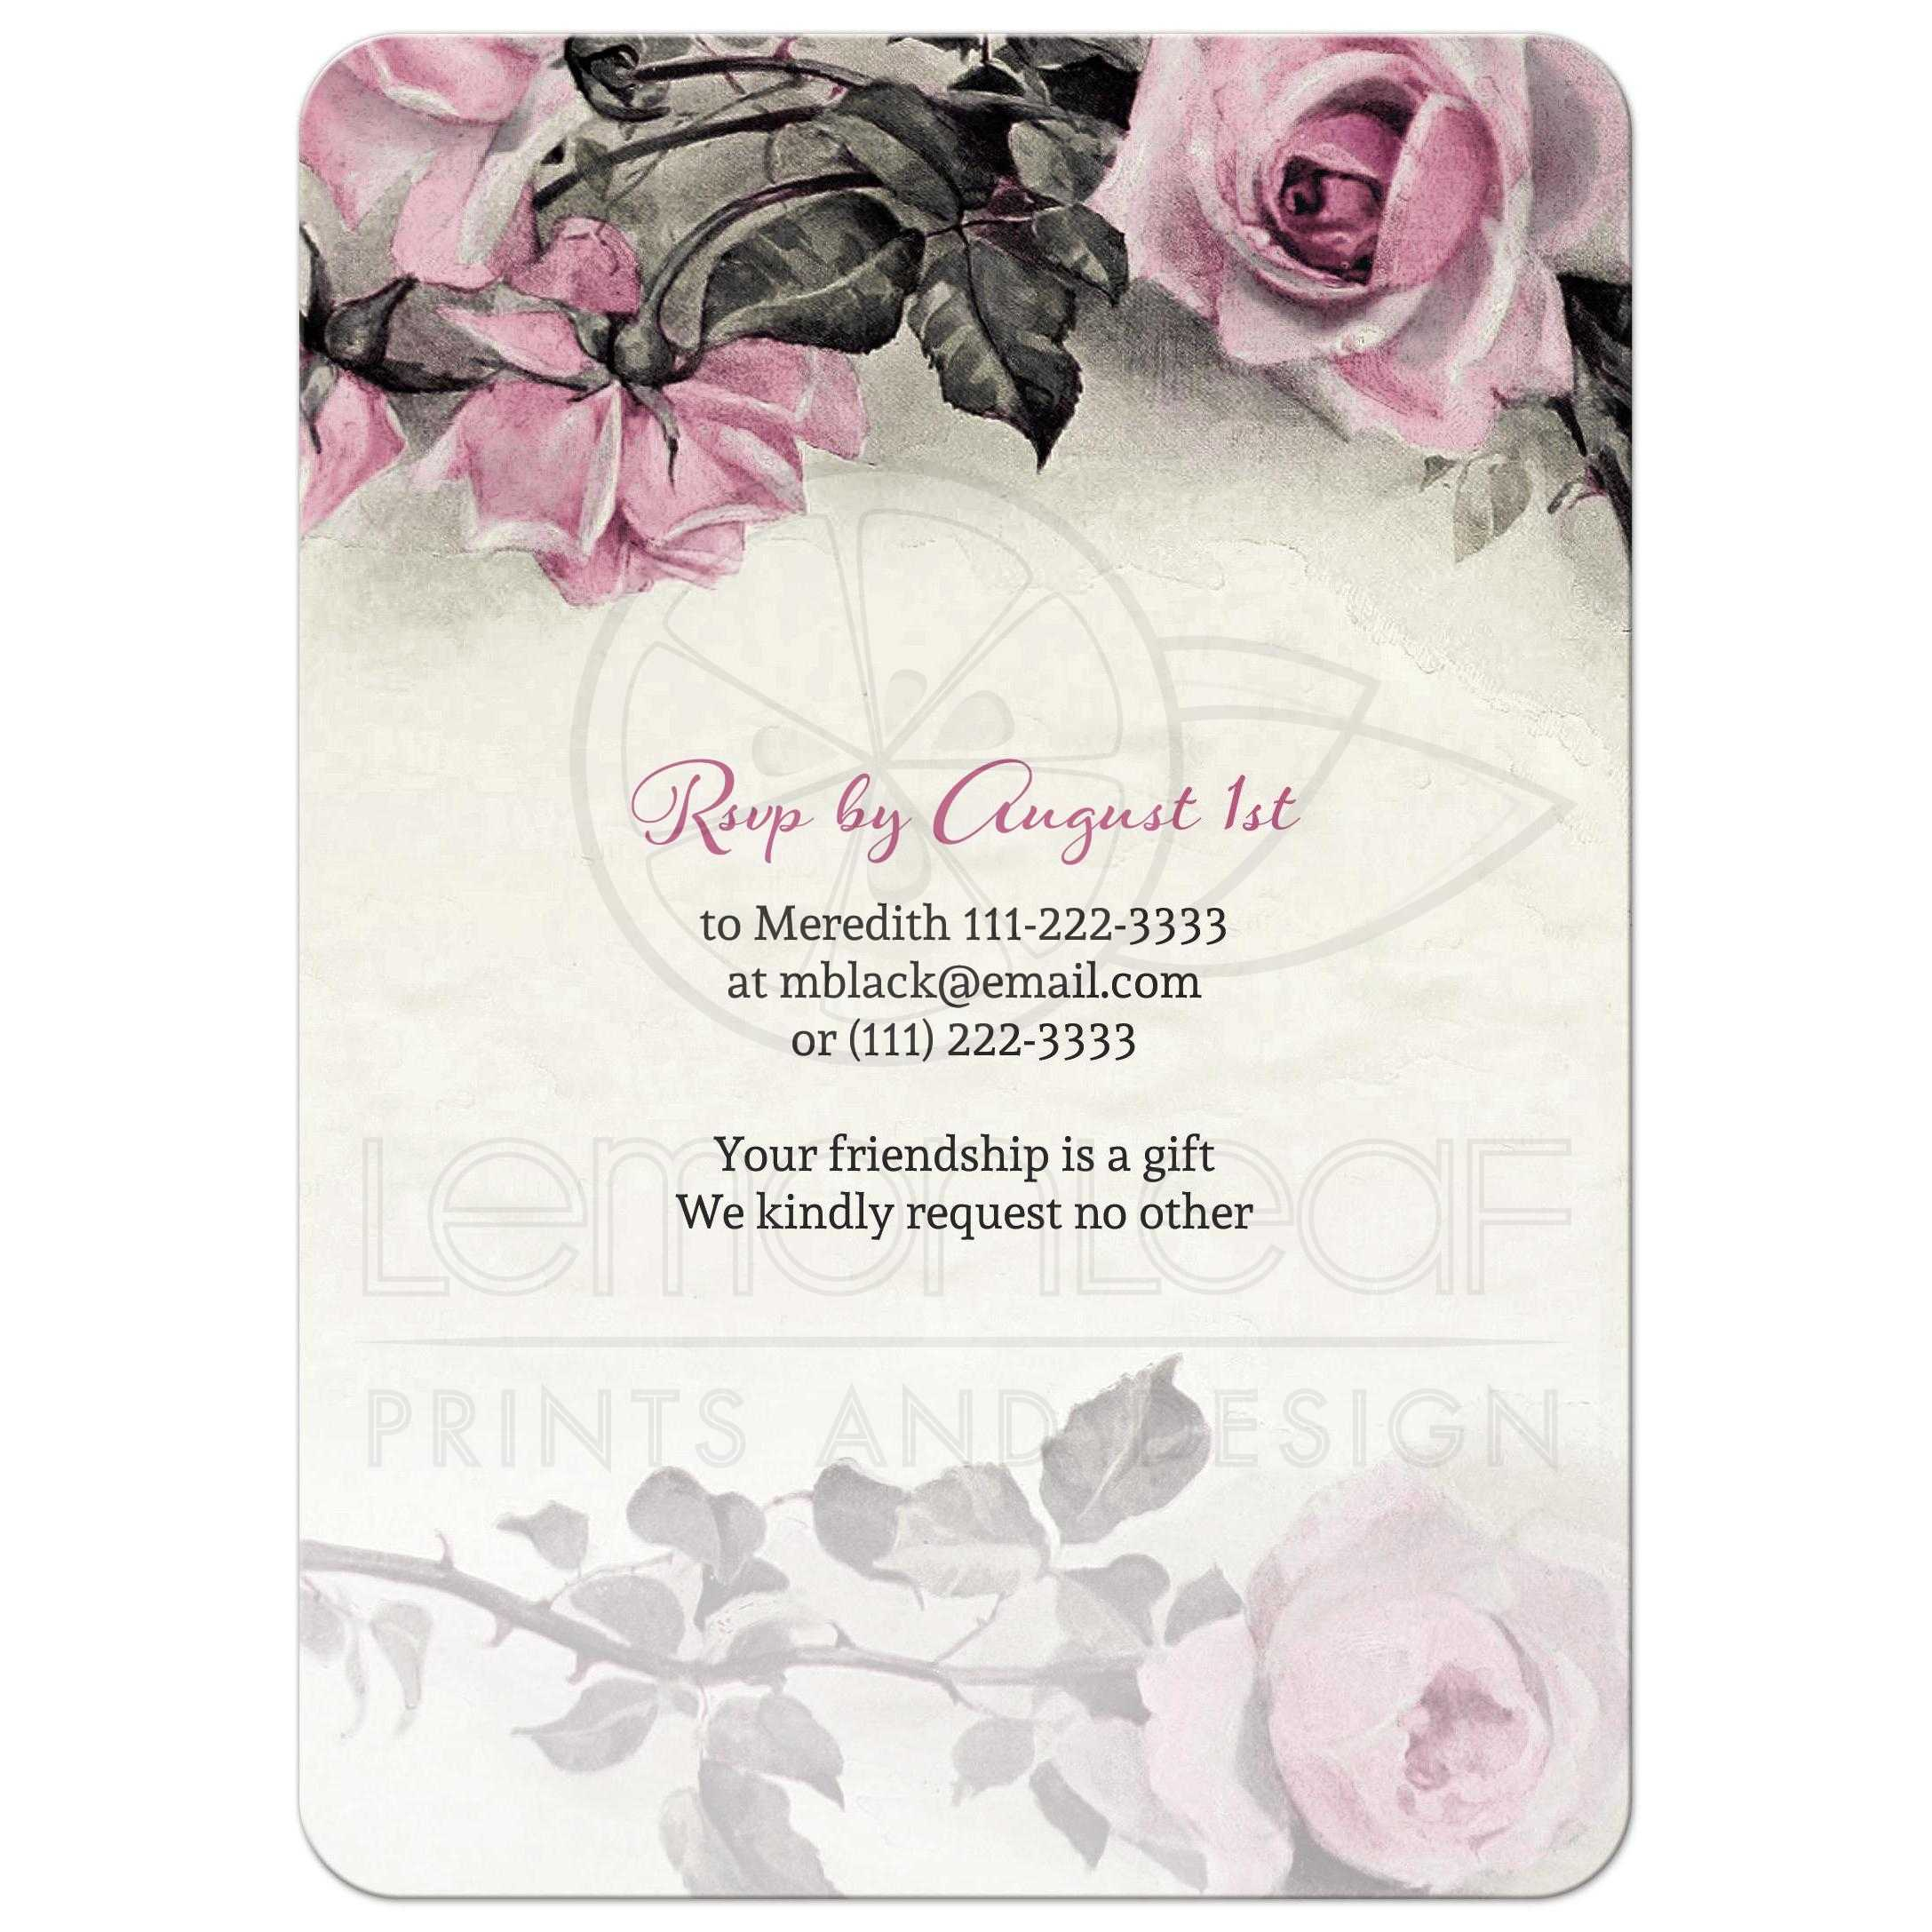 60th birthday invitations for her - Forte.euforic.co